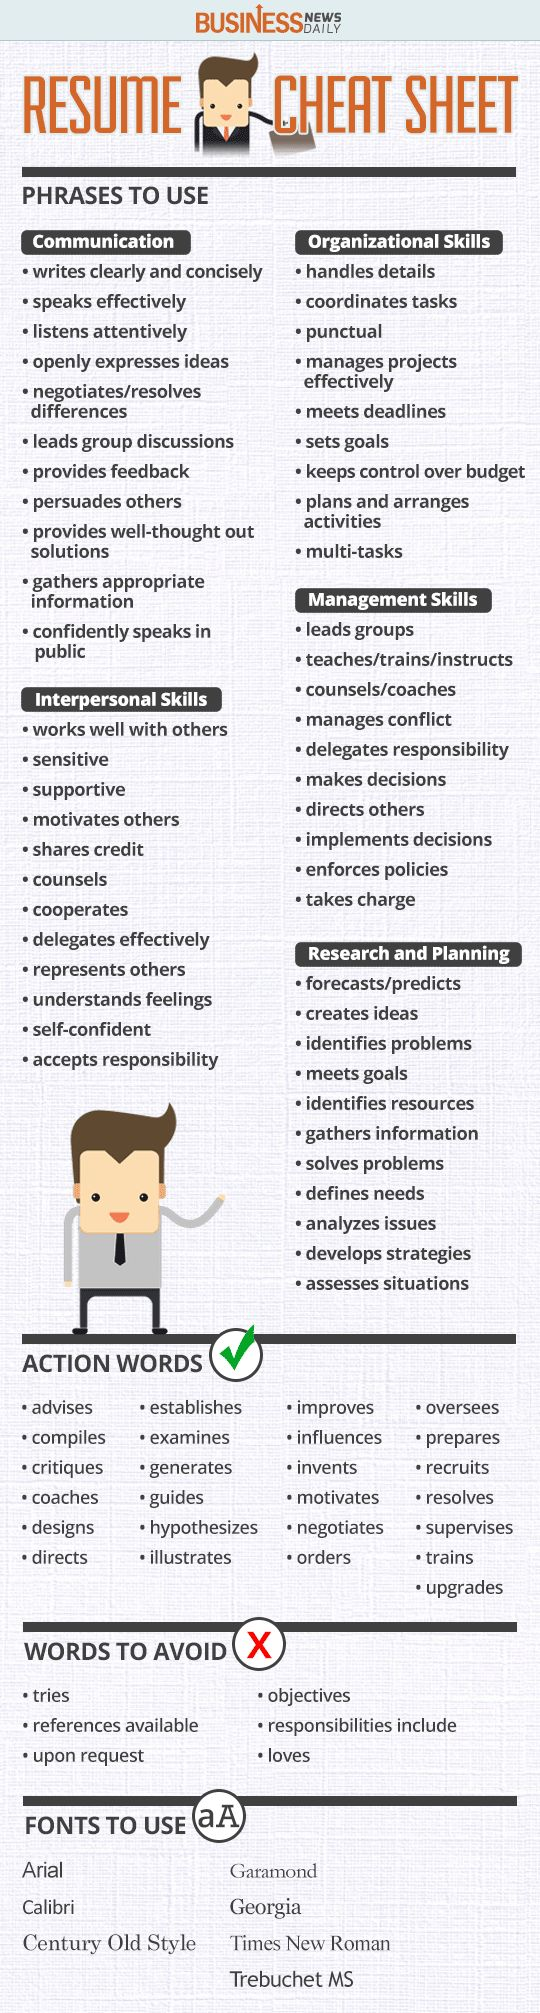 Opposenewapstandardsus  Surprising  Ideas About Resume On Pinterest  Cv Format Resume Cv And  With Heavenly Resume Cheat Sheet Infographic Andrews Almost Done With A Complete Unit On Employment Which With Delightful Resume For Someone With No Experience Also Video Resumes In Addition Technical Resume Examples And Indesign Resume Templates As Well As Credit Analyst Resume Additionally Skills And Abilities Resume Examples From Pinterestcom With Opposenewapstandardsus  Heavenly  Ideas About Resume On Pinterest  Cv Format Resume Cv And  With Delightful Resume Cheat Sheet Infographic Andrews Almost Done With A Complete Unit On Employment Which And Surprising Resume For Someone With No Experience Also Video Resumes In Addition Technical Resume Examples From Pinterestcom